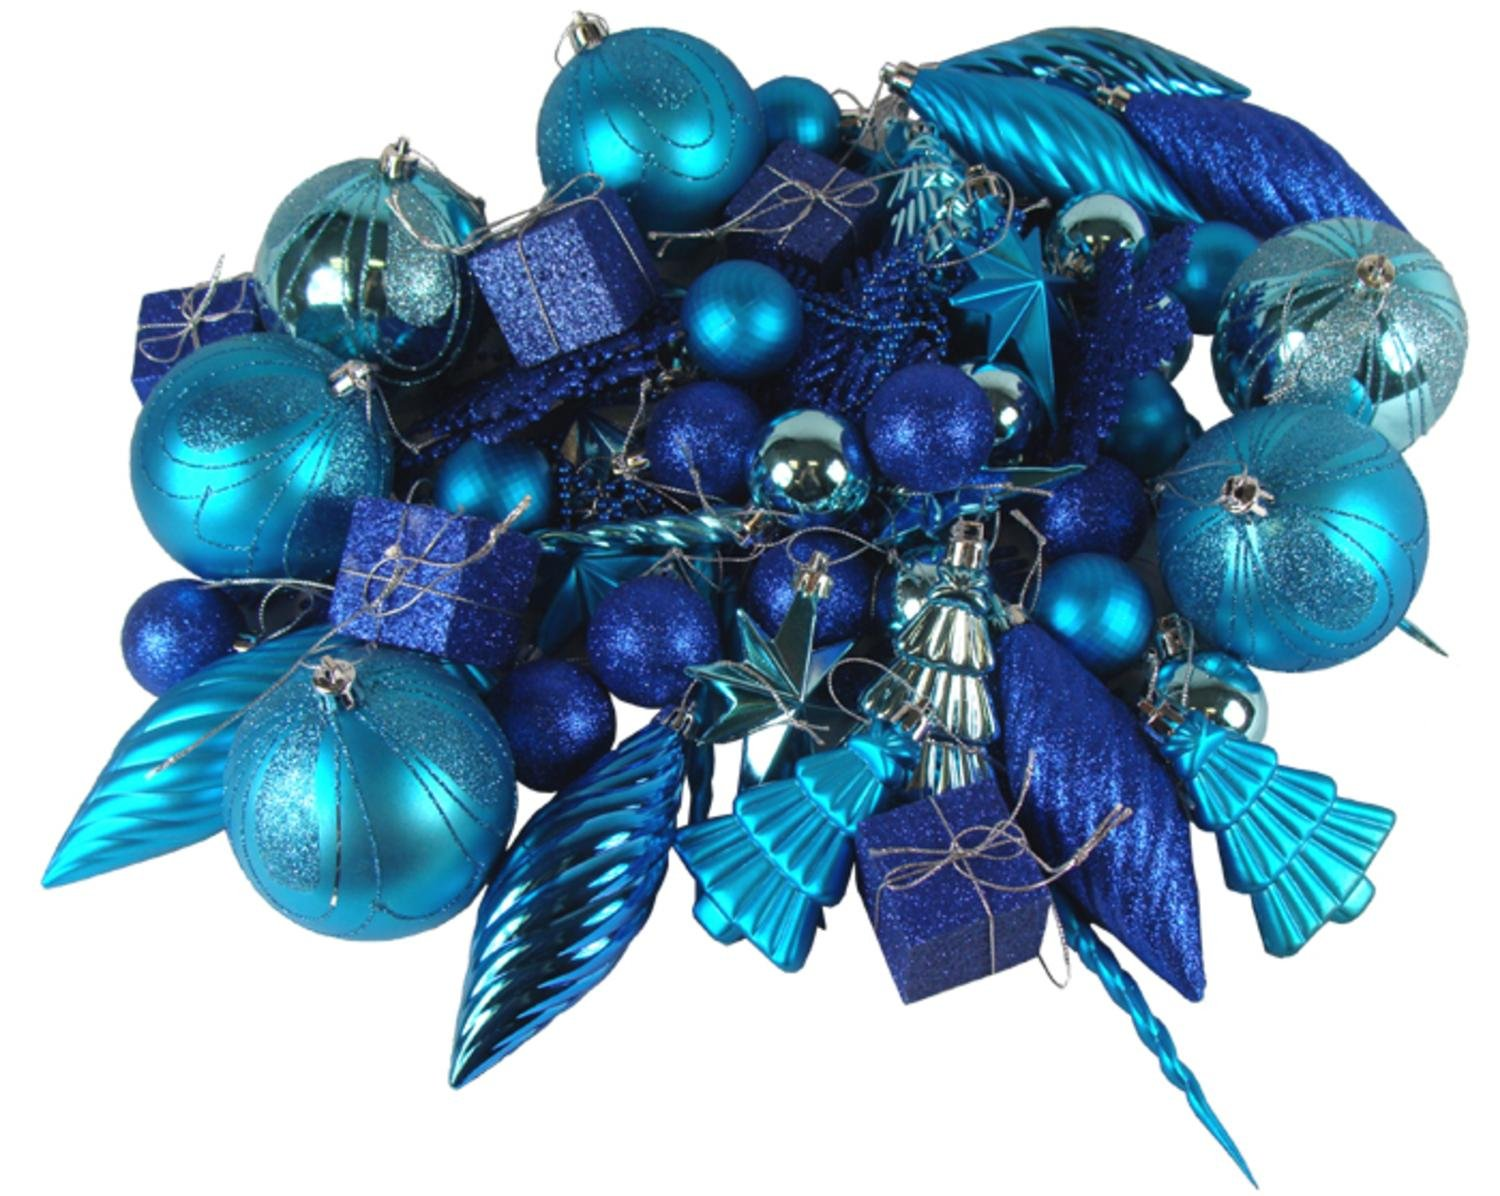 Northlight 125-Piece Club Pack of Shatterproof Regal Peacock Blue Christmas Ornaments by Northlight